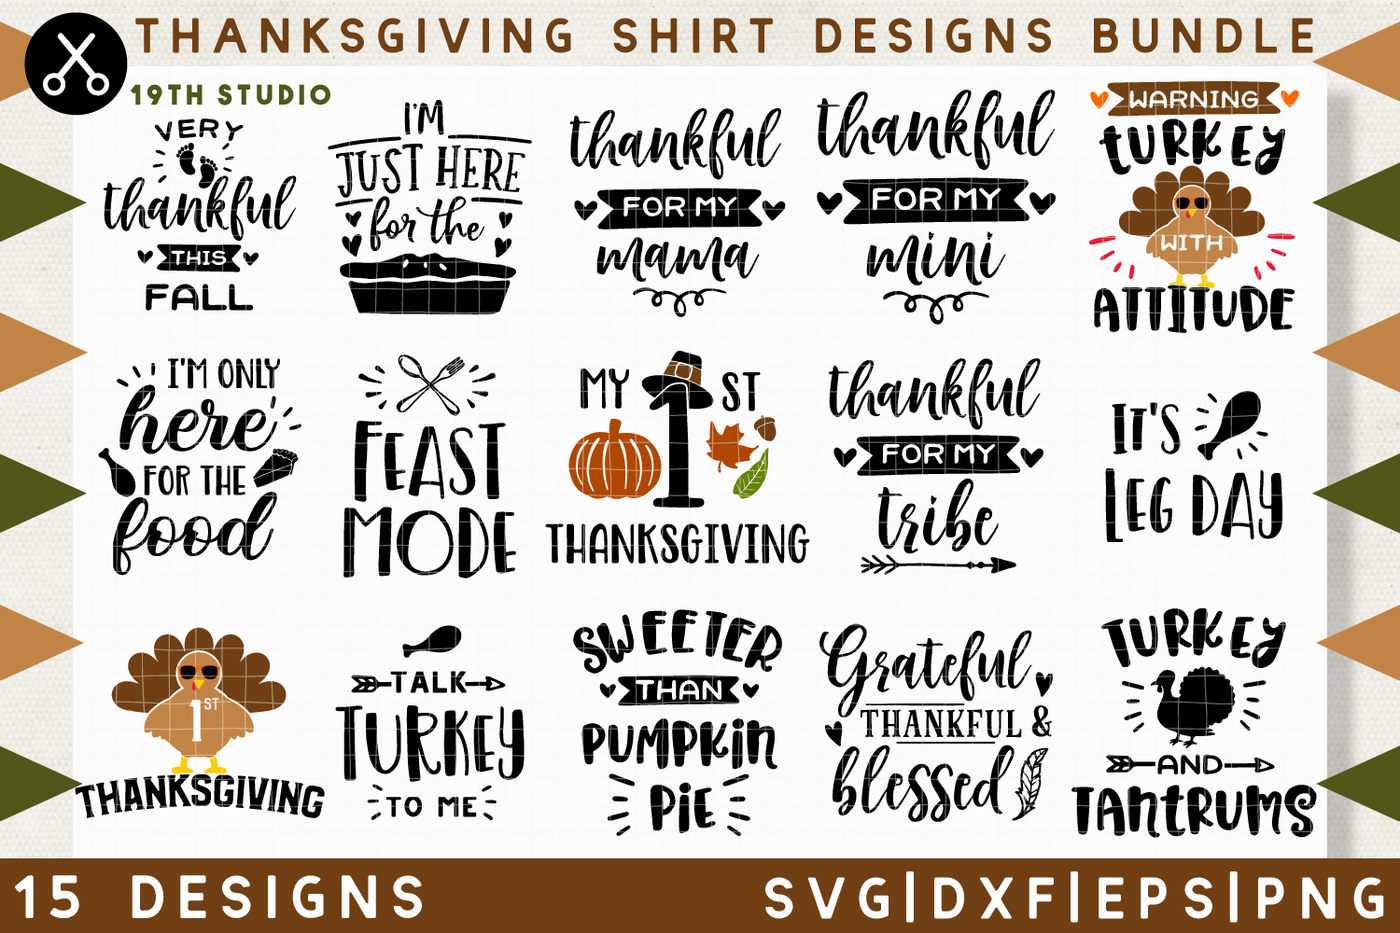 Thanksgiving Shirt Designs Bundle M38 Svg Dxf Eps Png By 19th